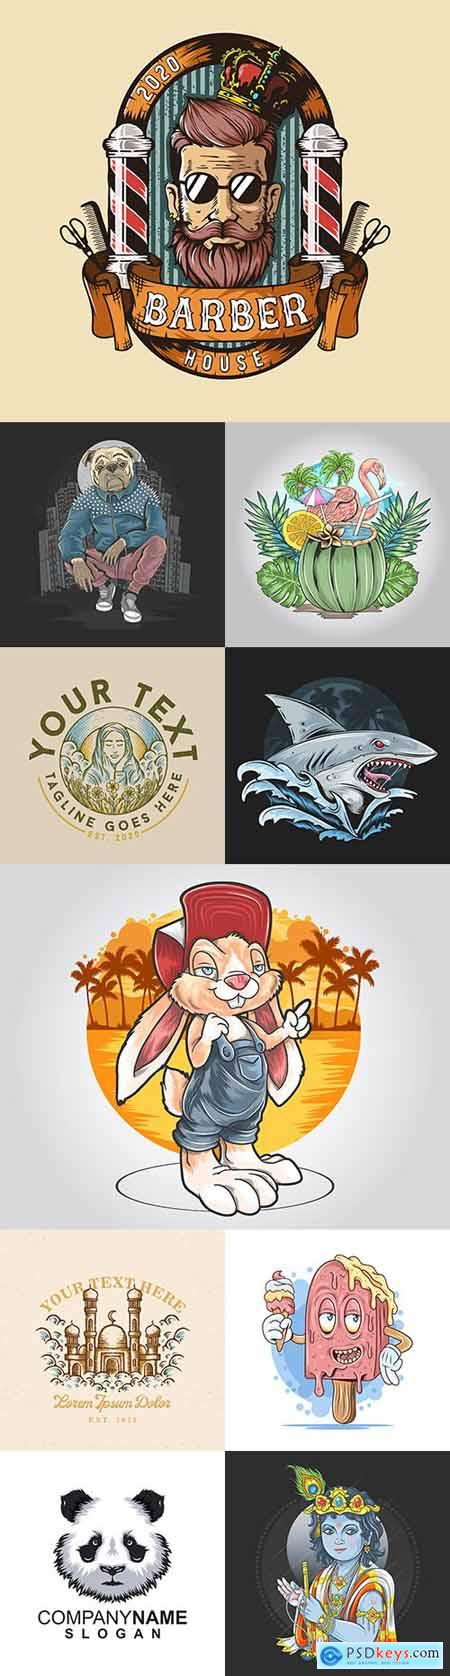 Logos and emblems different goods and services vintage design 2